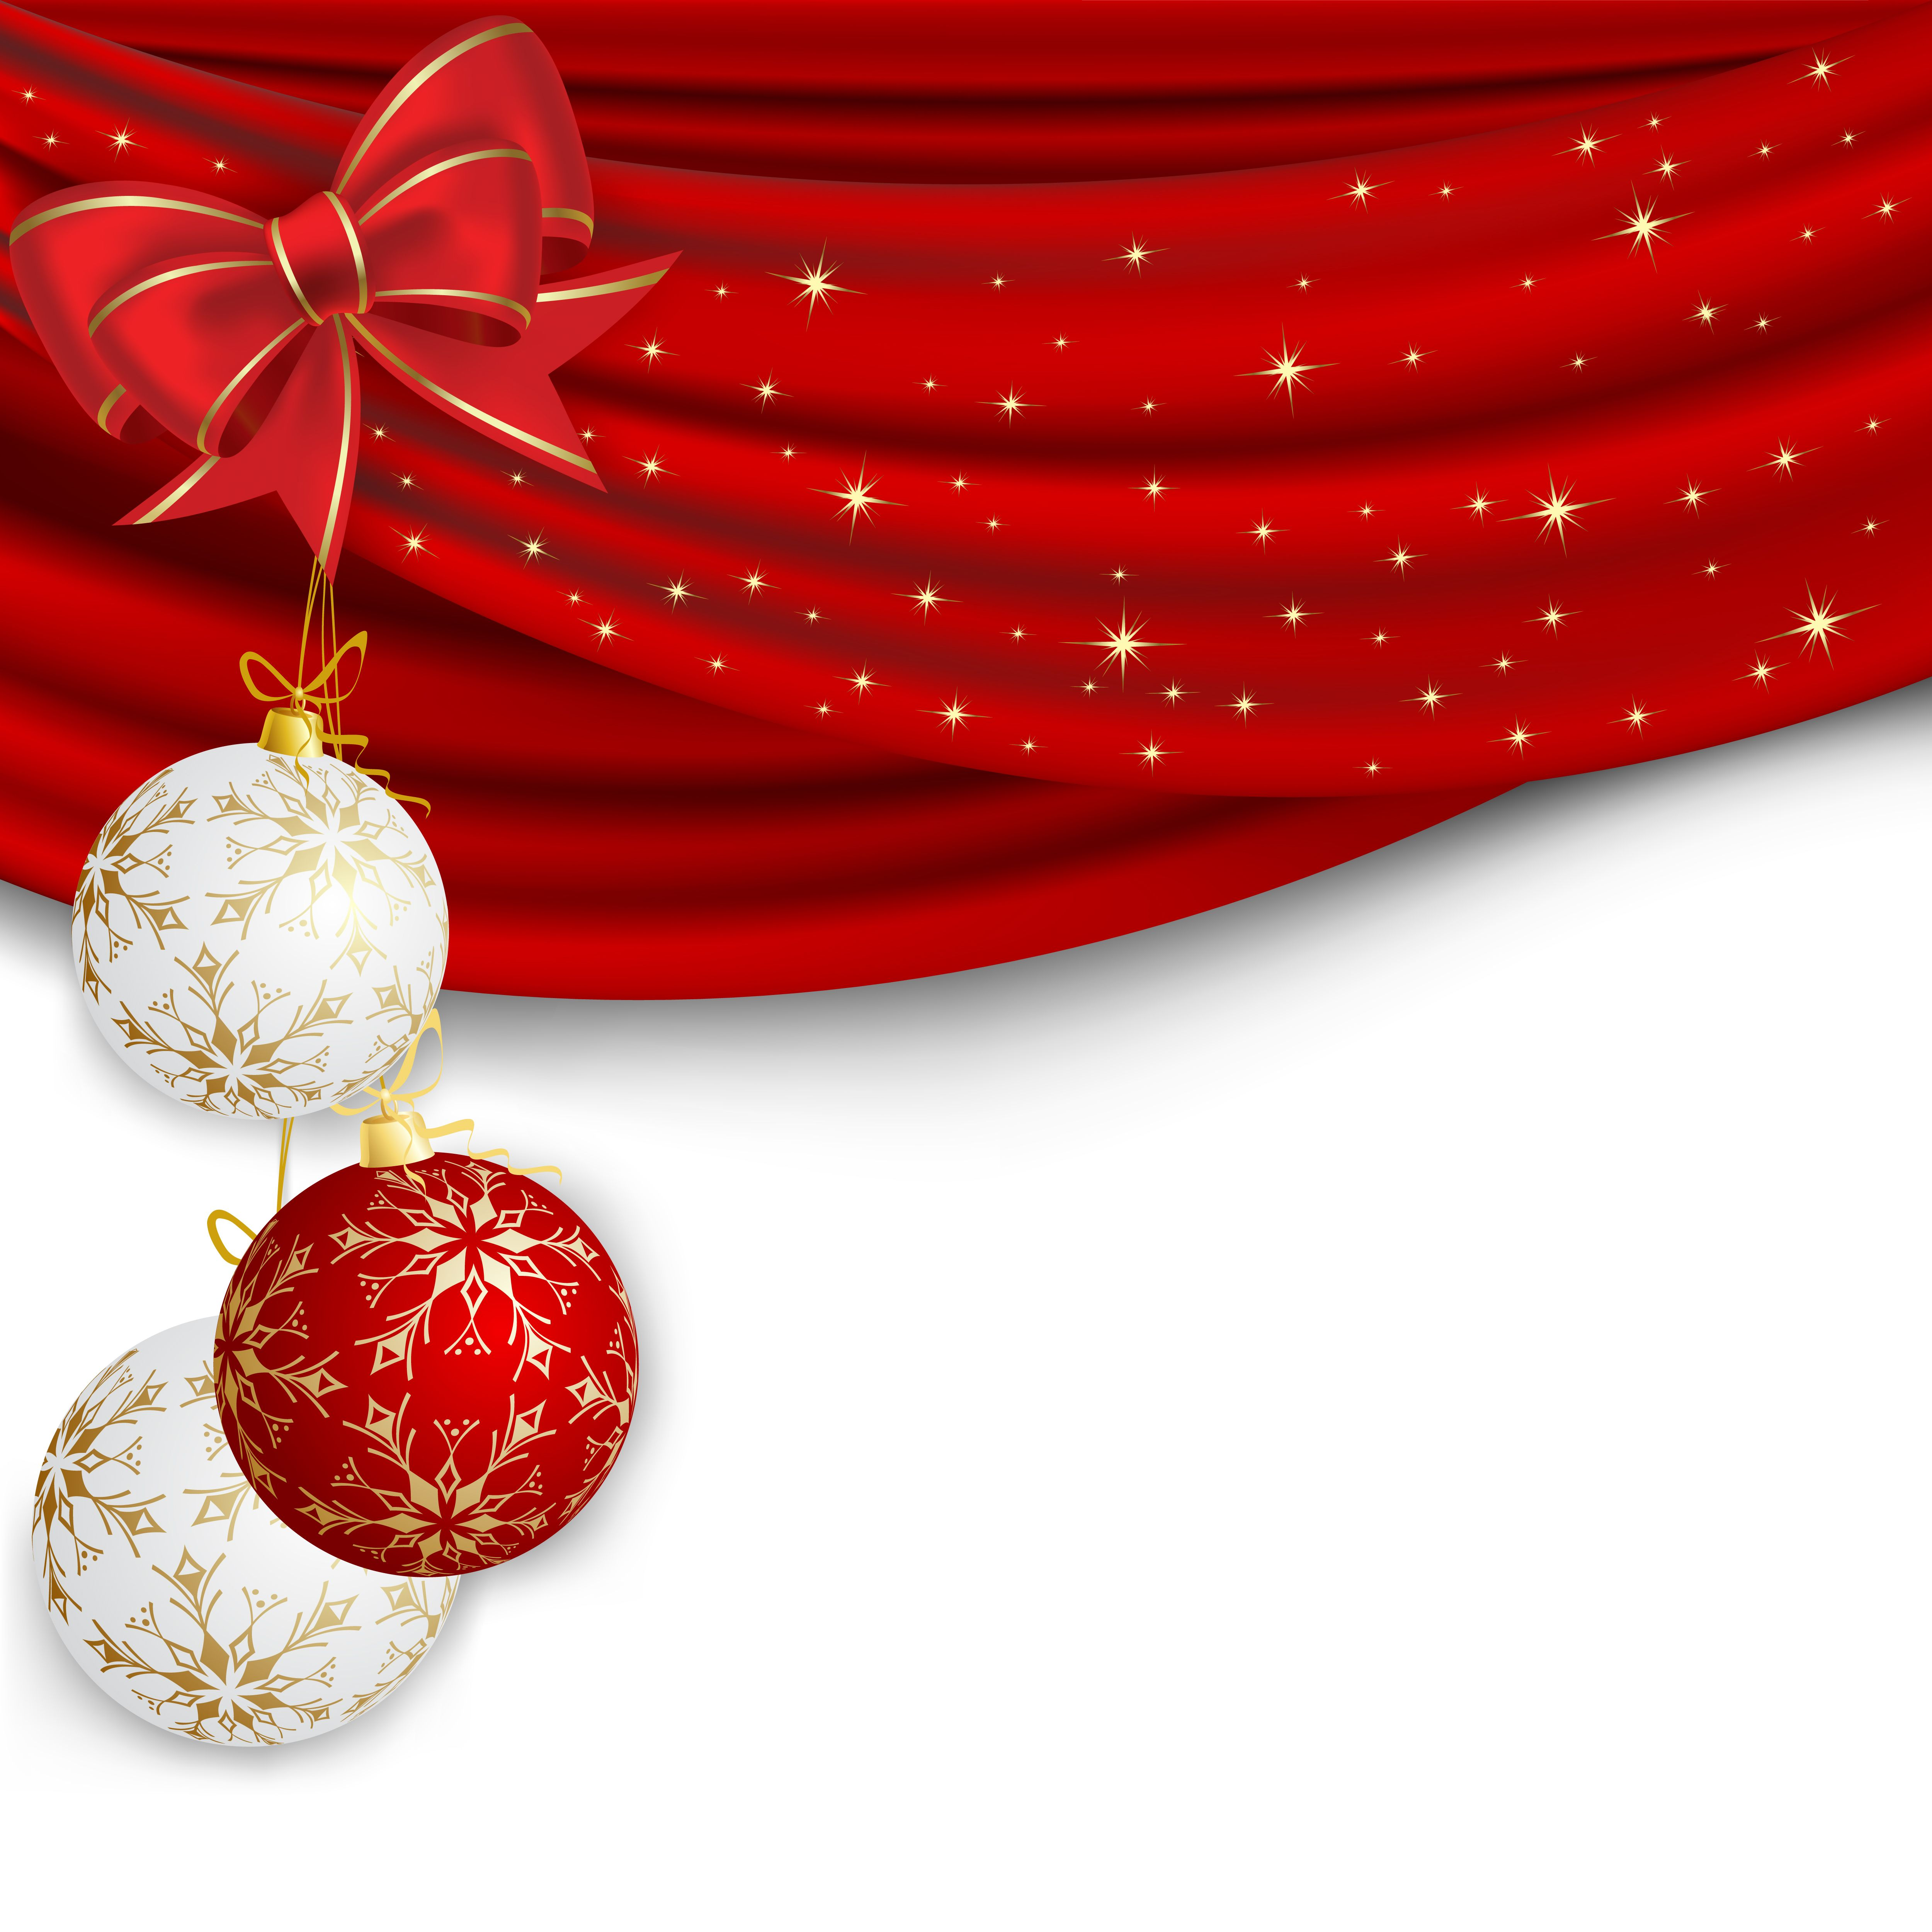 Christmas background wallpapers, images, photos, pis